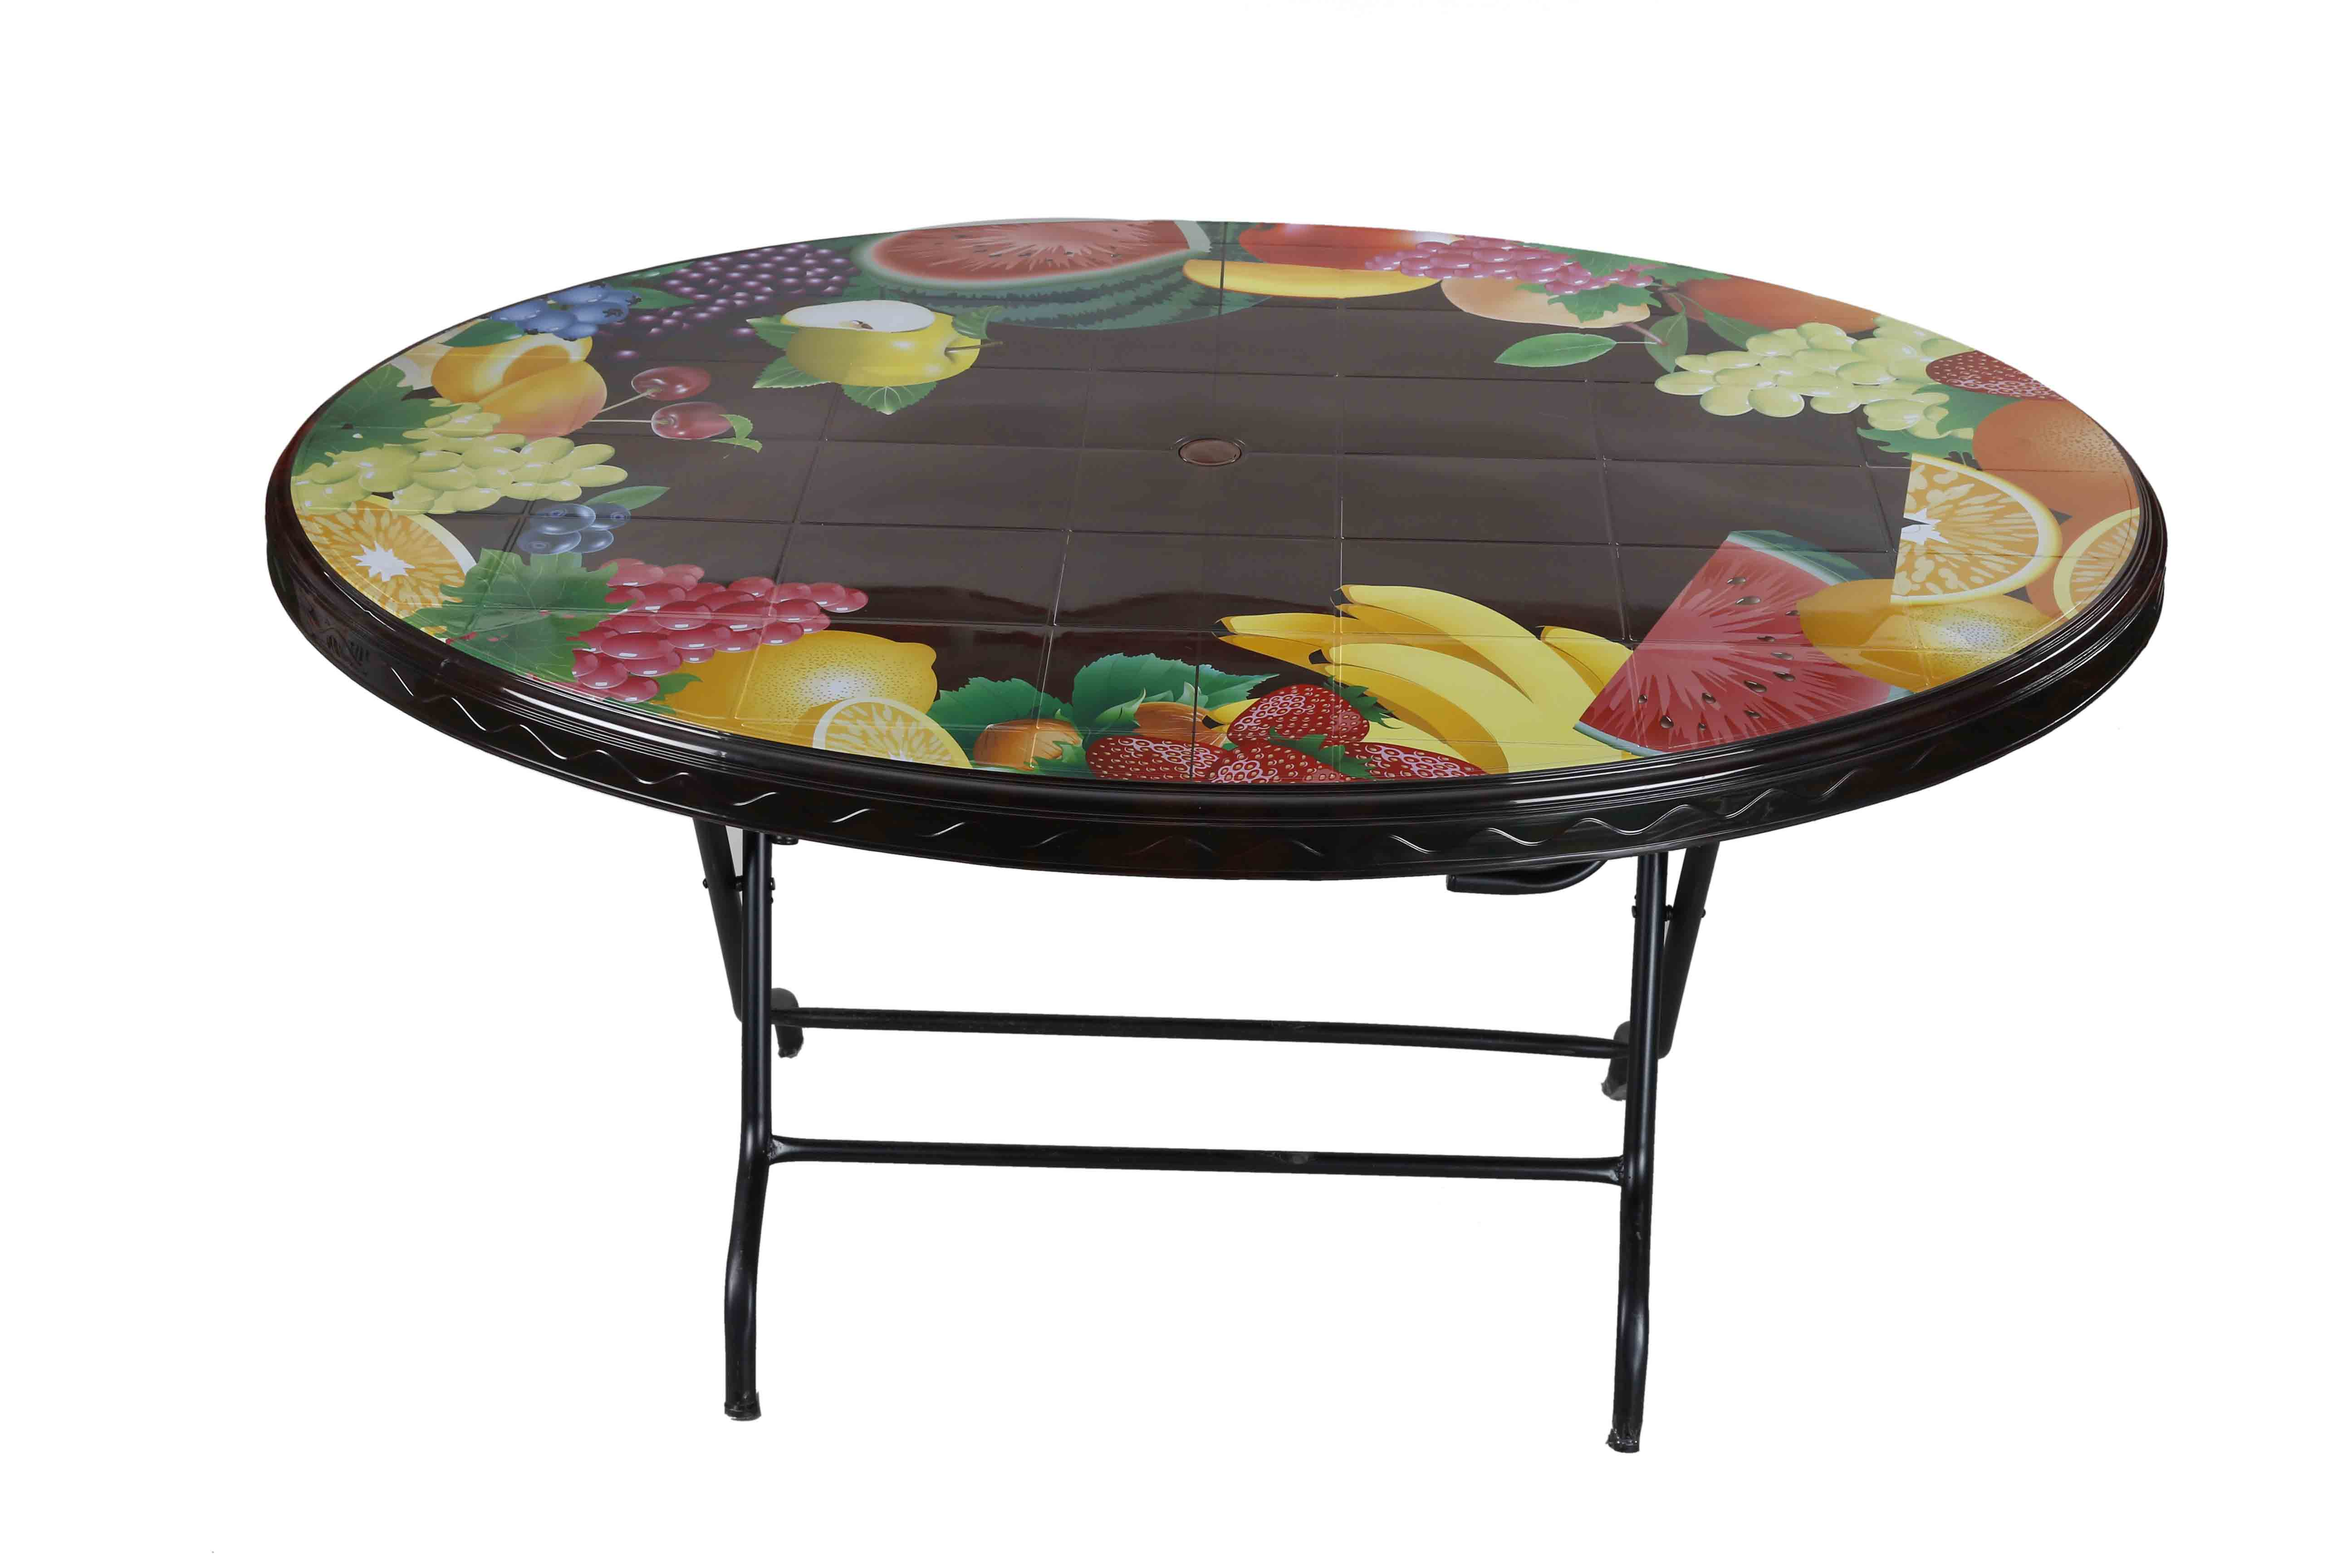 Dining Table 6 Seat Oval S/L Print Mixed Fruit -RW